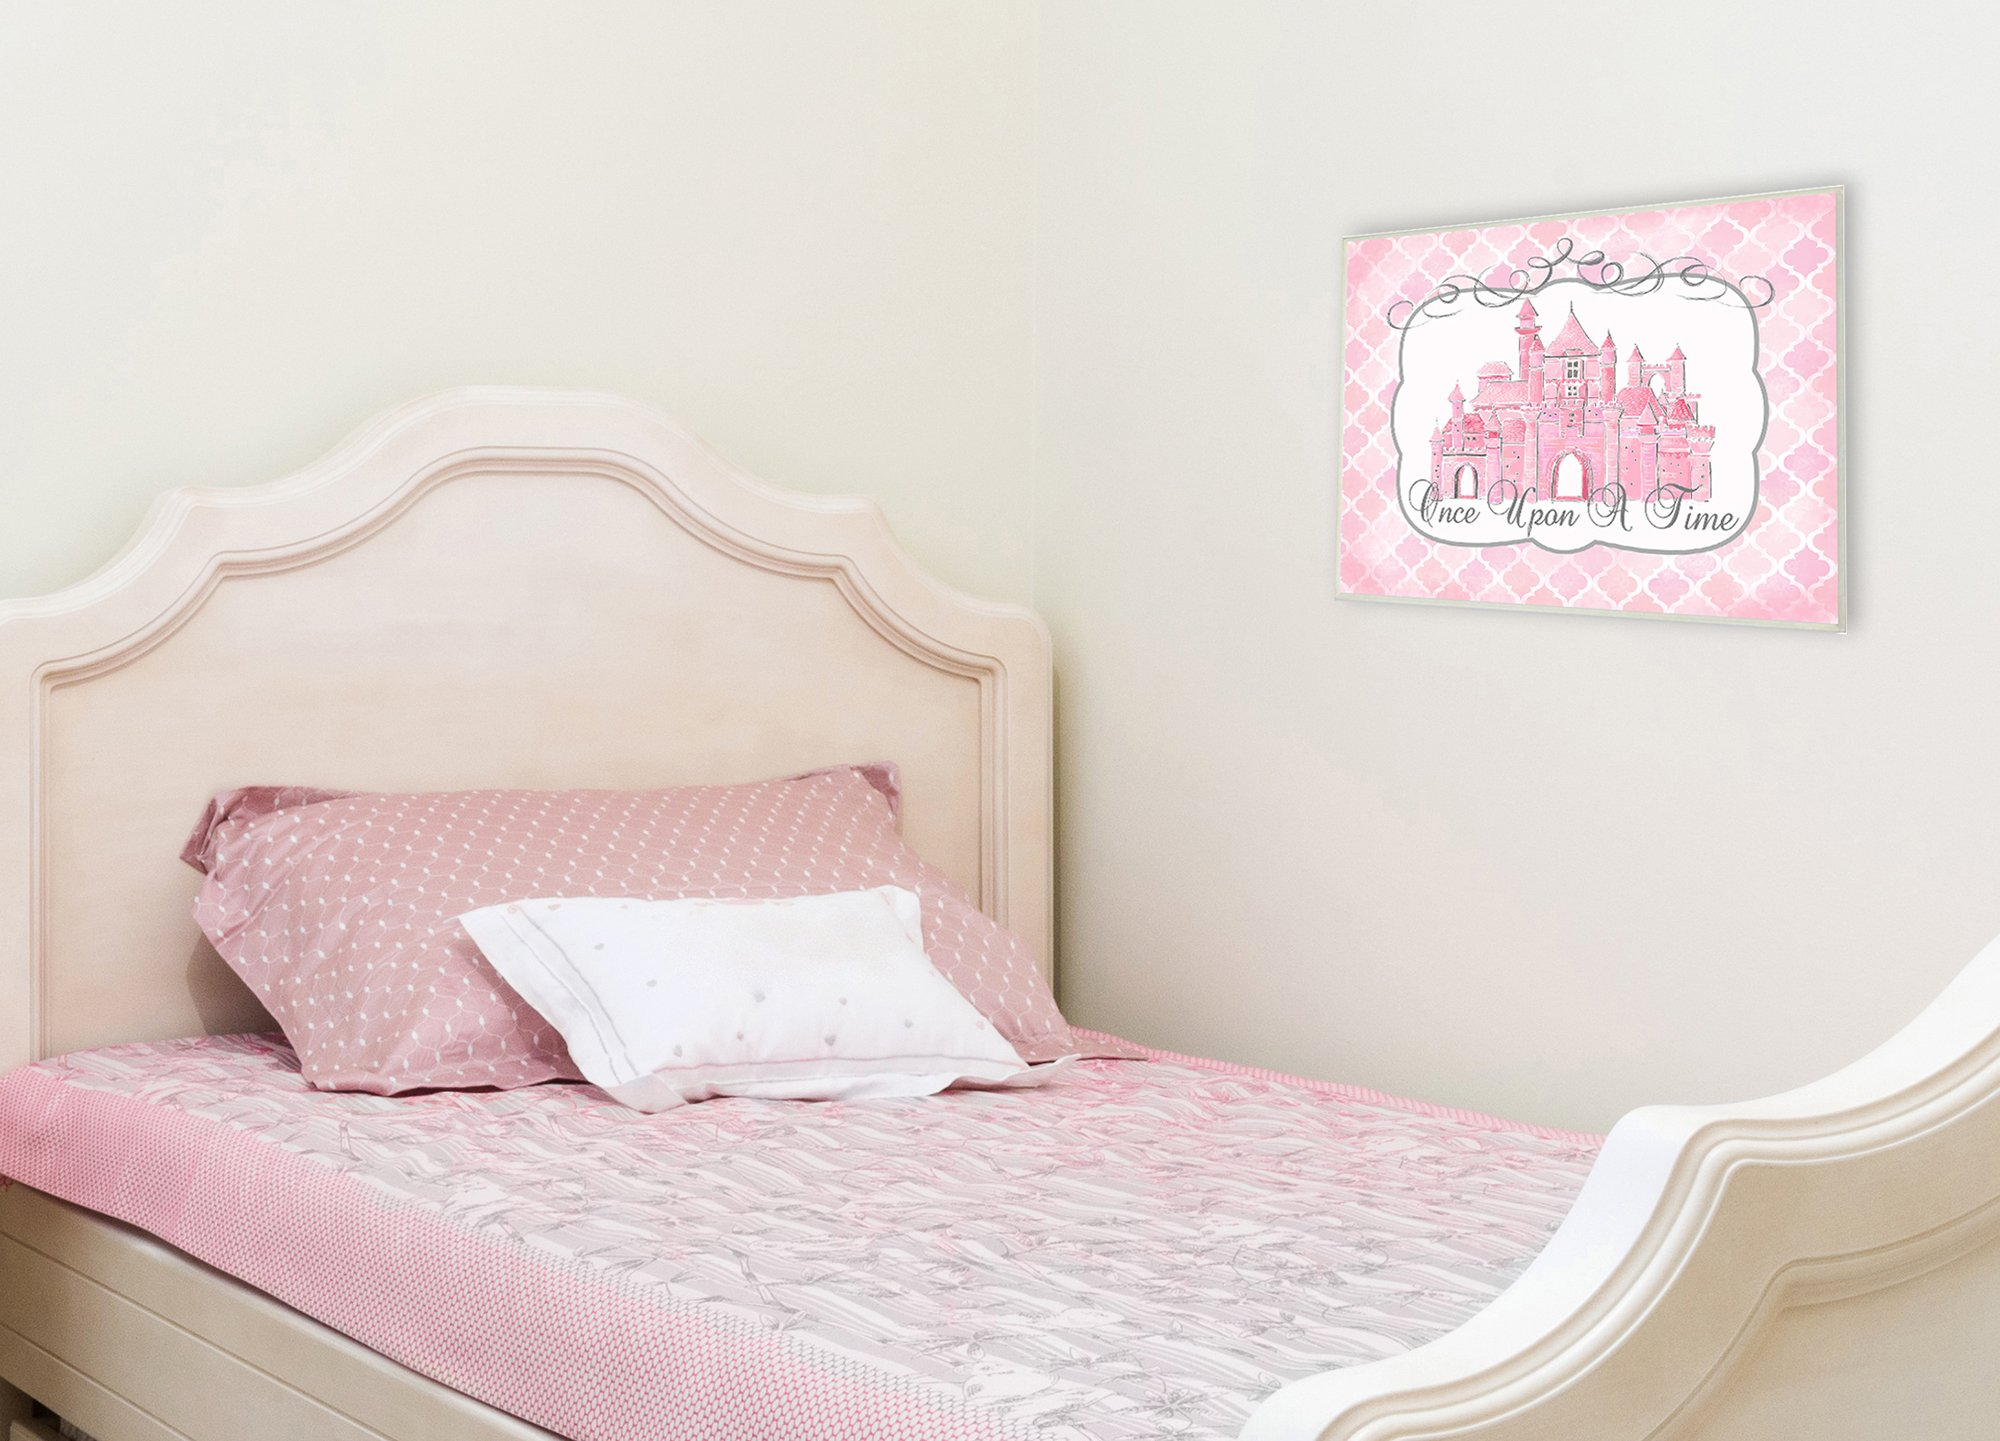 The Kids Room by Stupell Stupell Home Décor Once Upon a Time Pink Water Color Castle Wall Plaque Art, 10 x 0.5 x 15, Proudly Made in USA by The Kids Room by Stupell (Image #2)